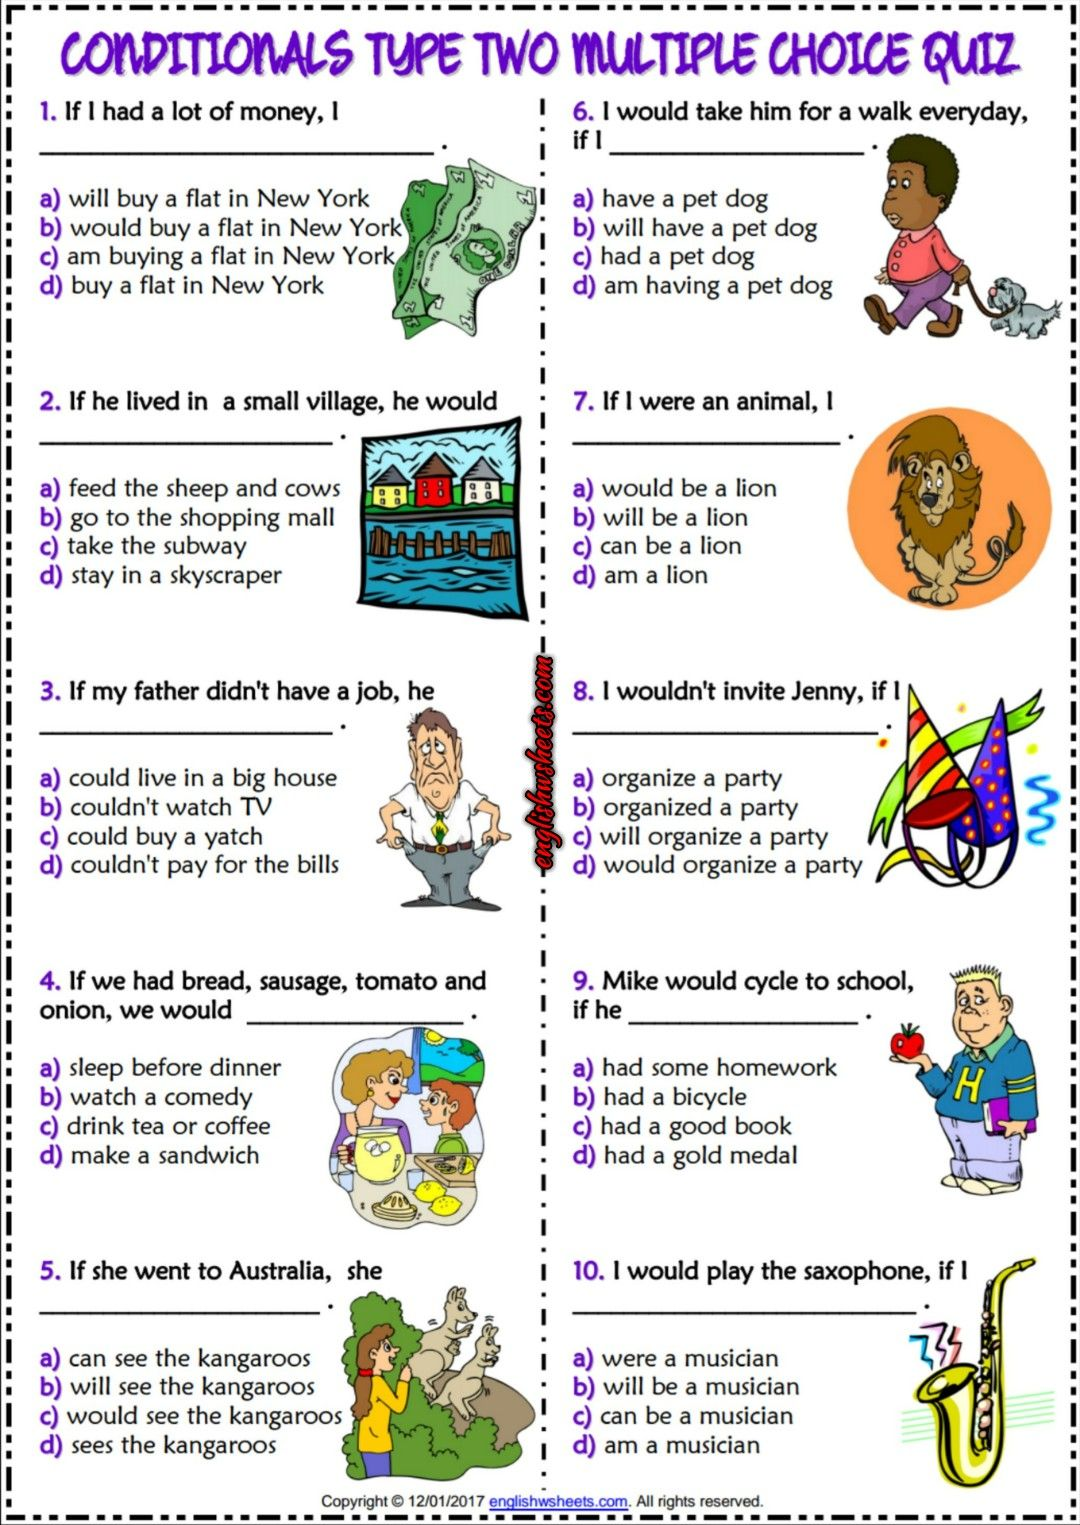 Conditionals Type 2 Esl Printable Multiple Choice Quiz